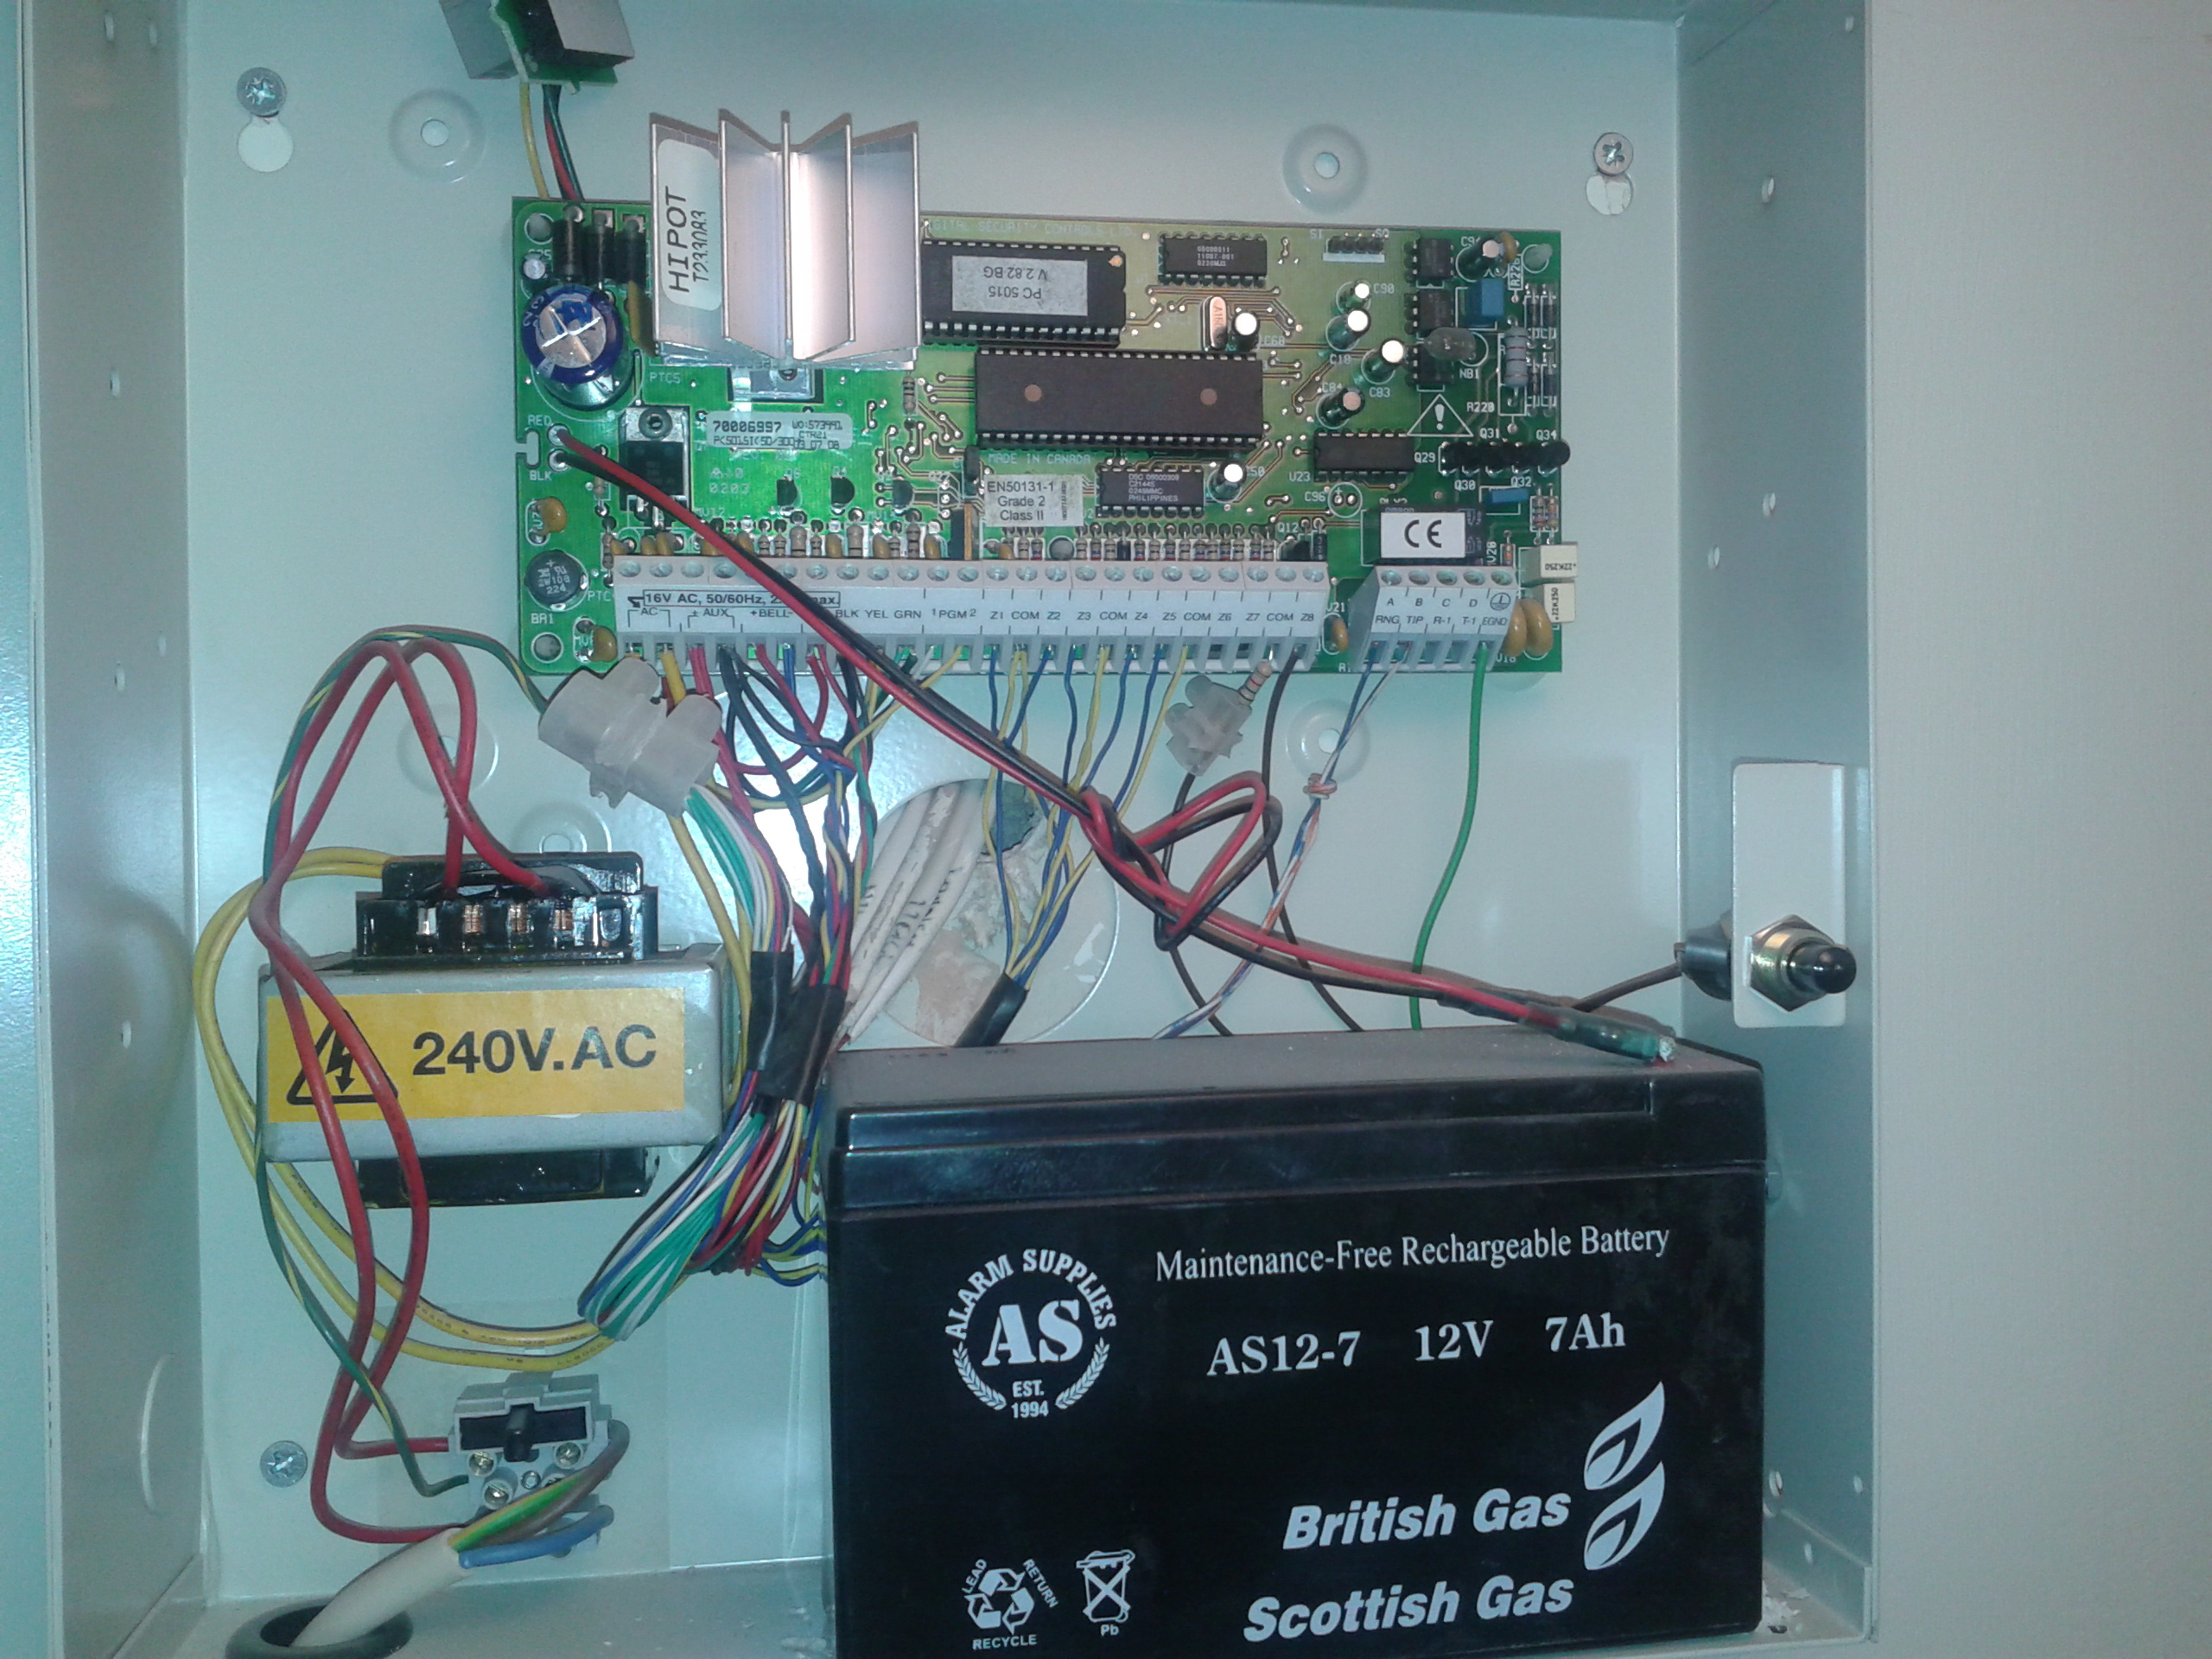 I Have A Dcs British Gas Kp Z Alarm System On A House I